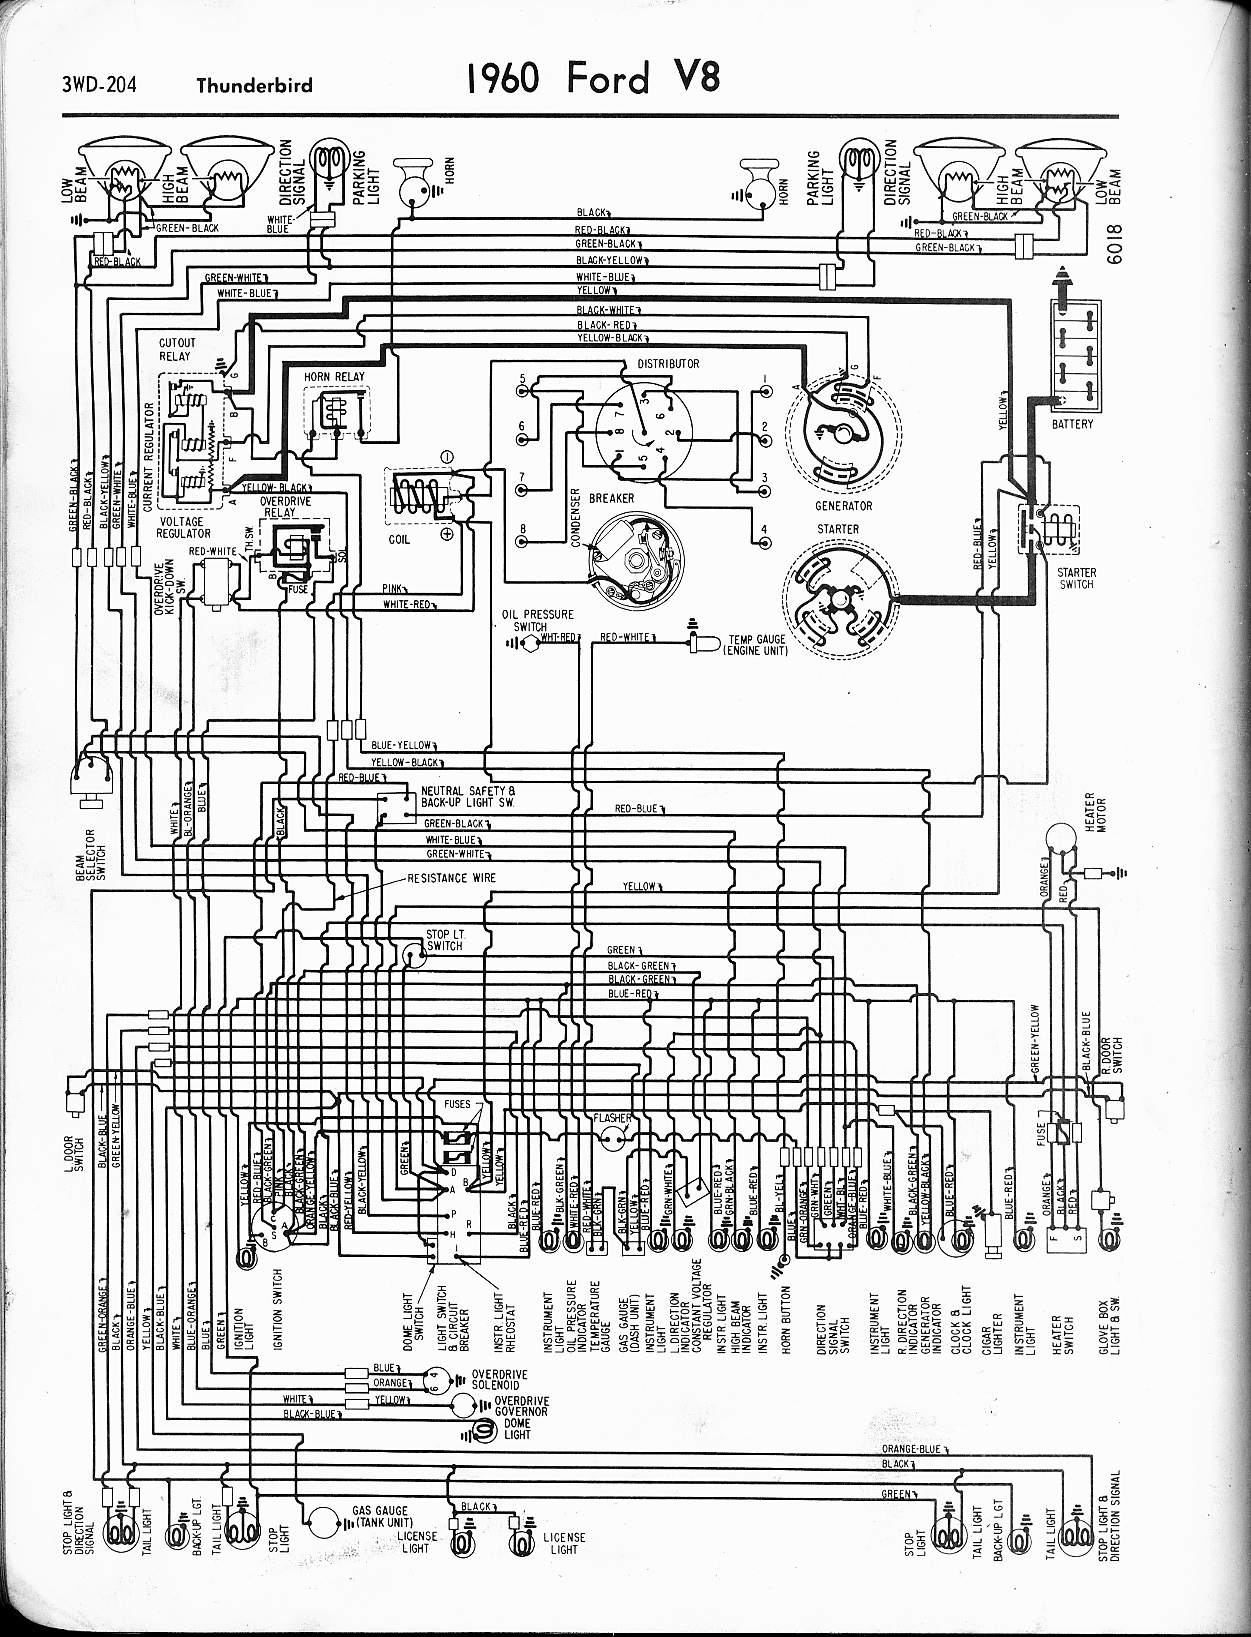 1988 ford festiva wiring diagram saturn l100 wiring